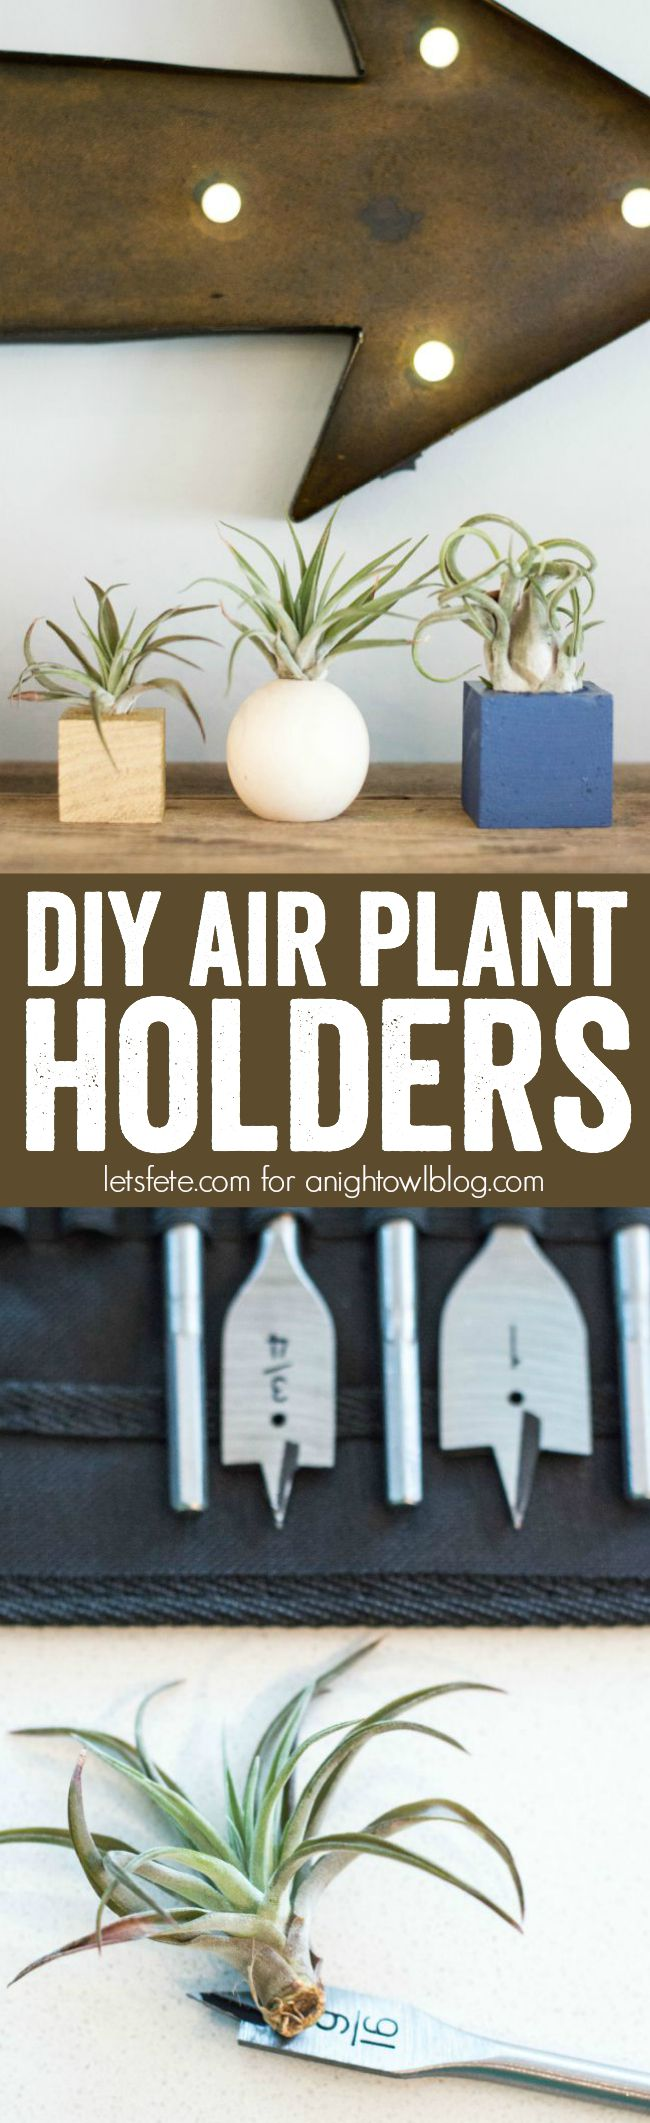 DIY Air Plant Holders - easy and fun holders you can make at home with just a few supplies and endless imagination!